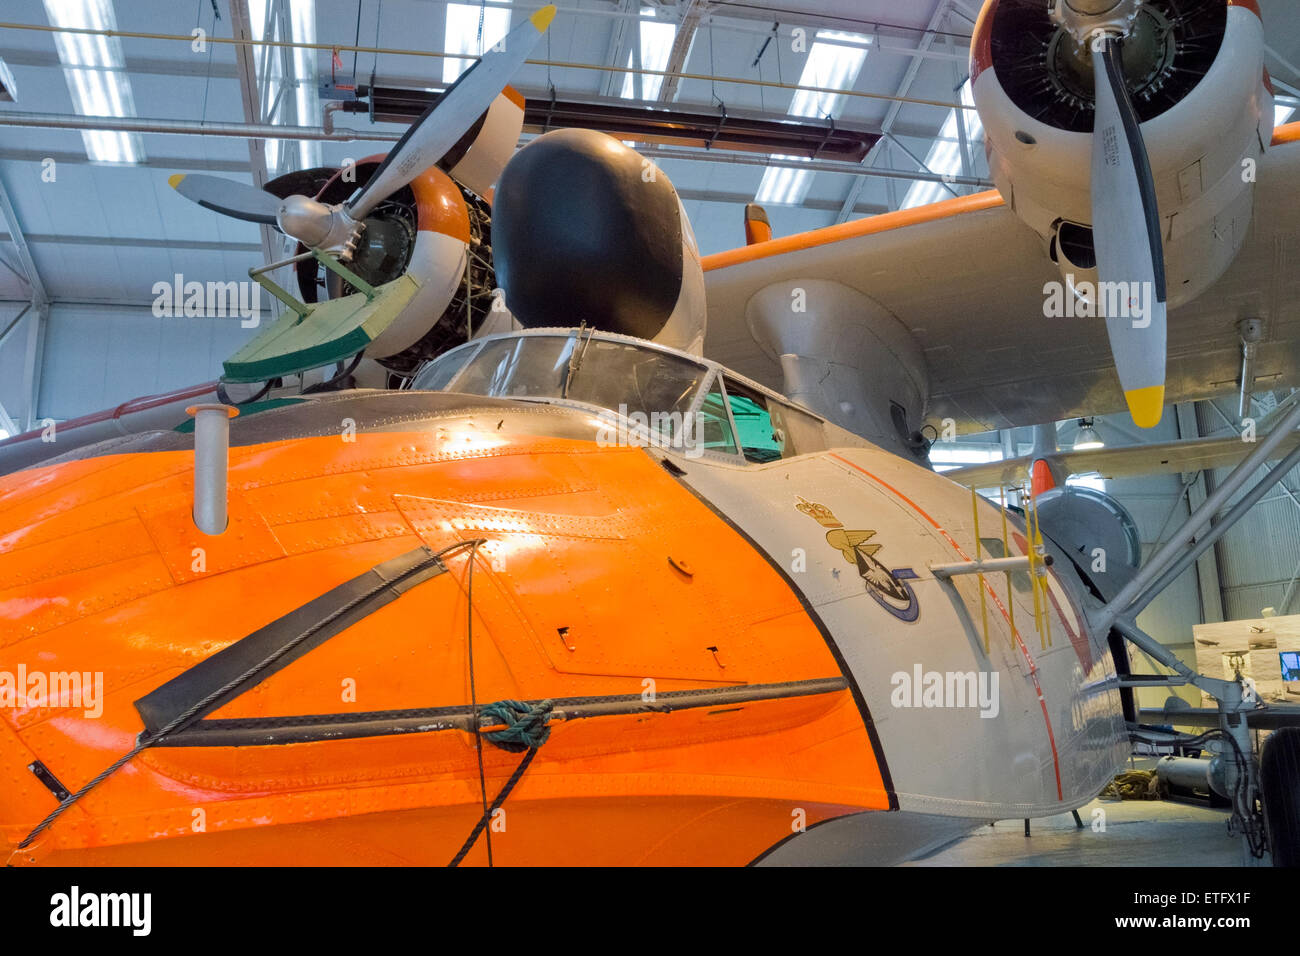 Consolidated Voltee PBY-6A Catalina Second World War Amphibian Aircraft - Stock Image